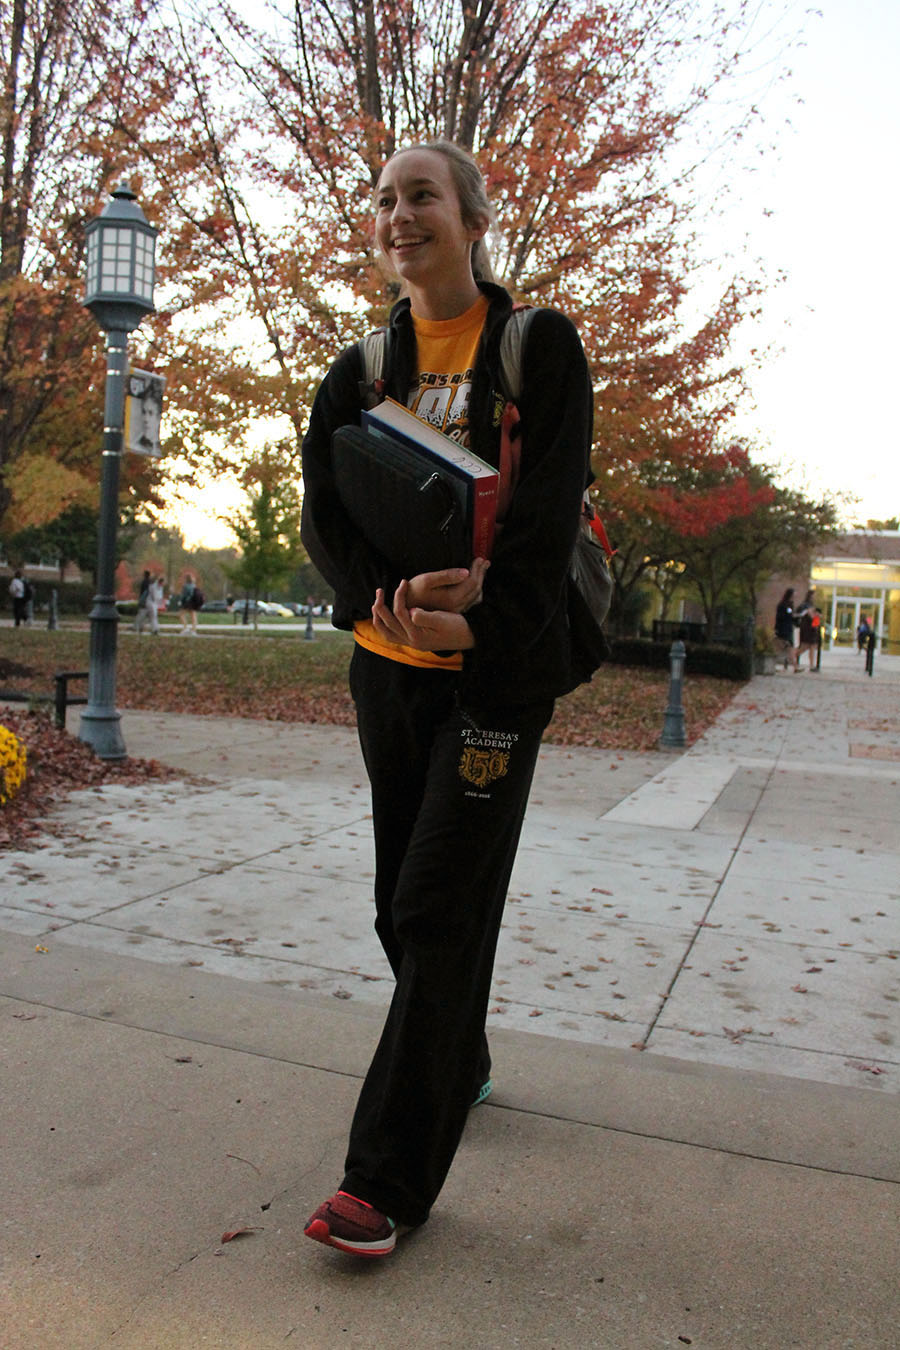 Junior Emma Anielak wears STA auction sweatpants with an STA t-shirt at St. Teresa\'s Academy on Nov. 4. Students are allowed to wear a non-uniform STA shirt or sweatshirt every friday. photo by Meghan Baker